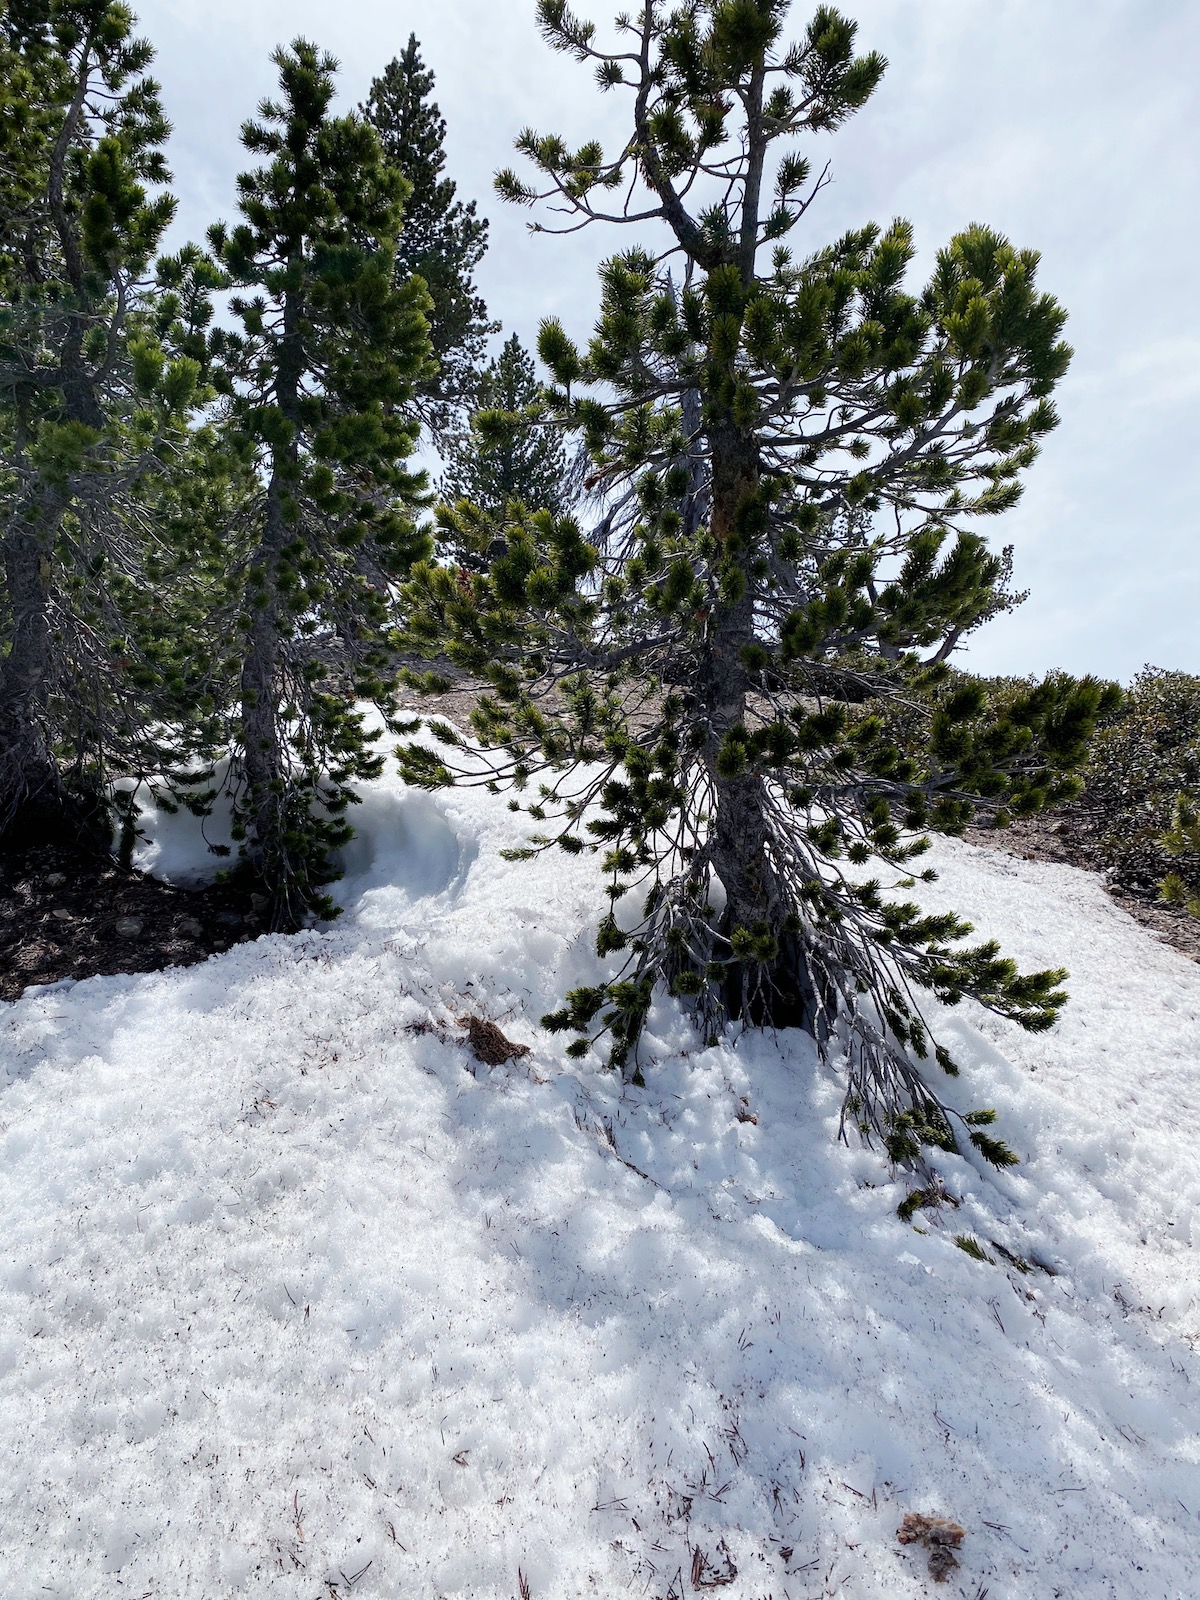 Mount Baden-Powell snow